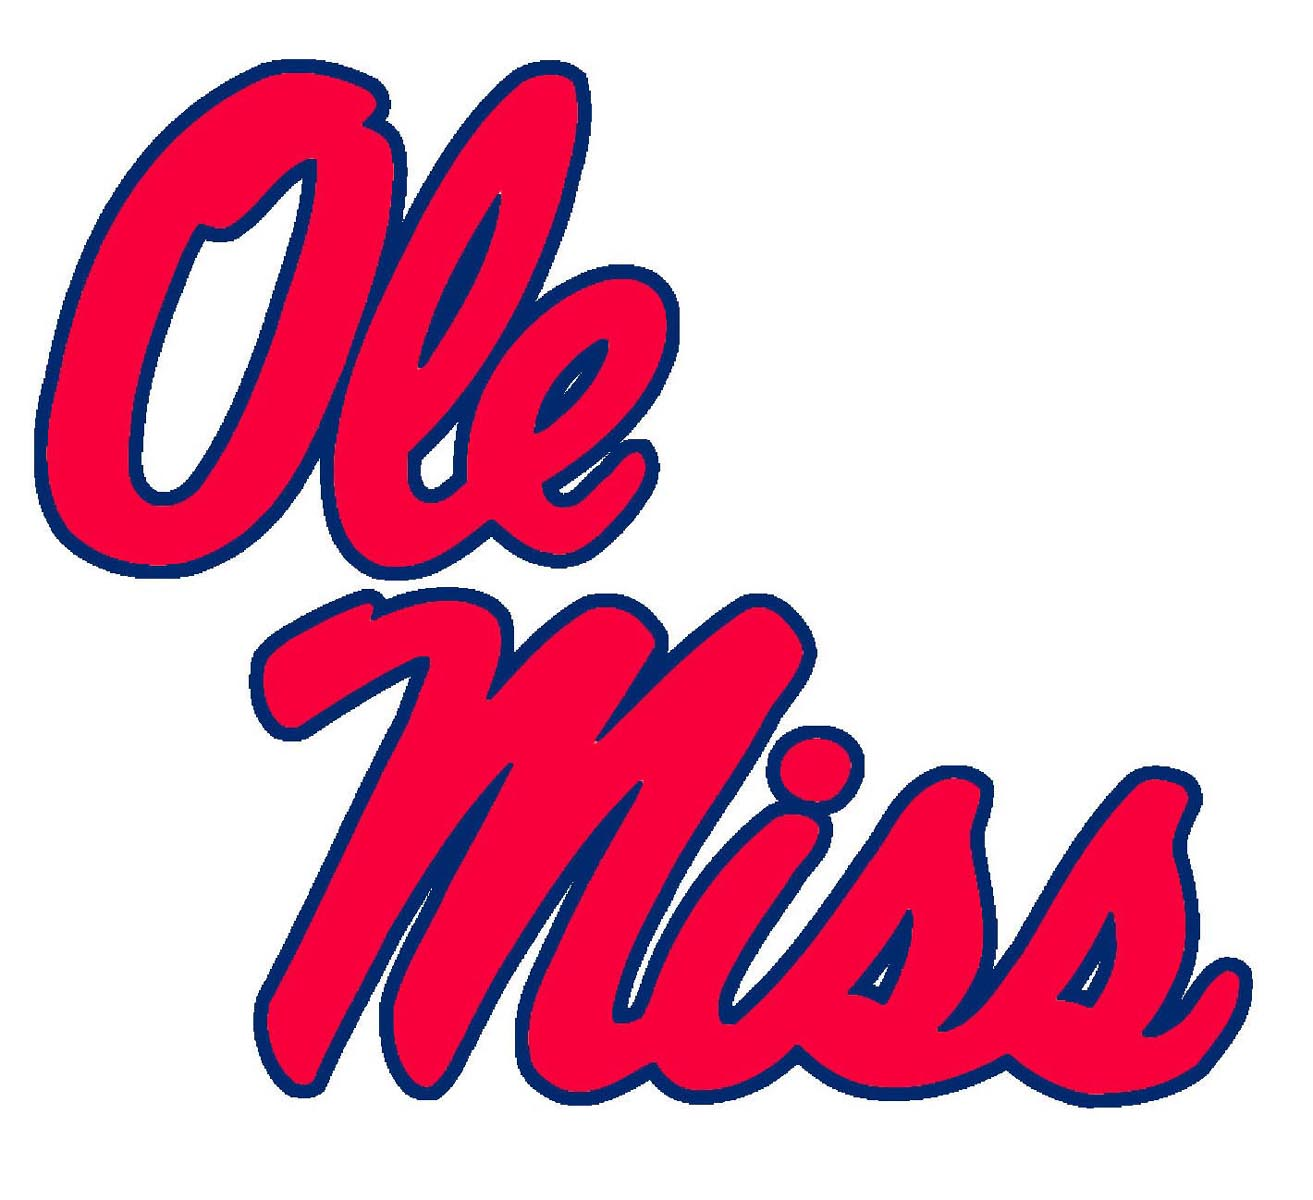 Ole Miss College 80